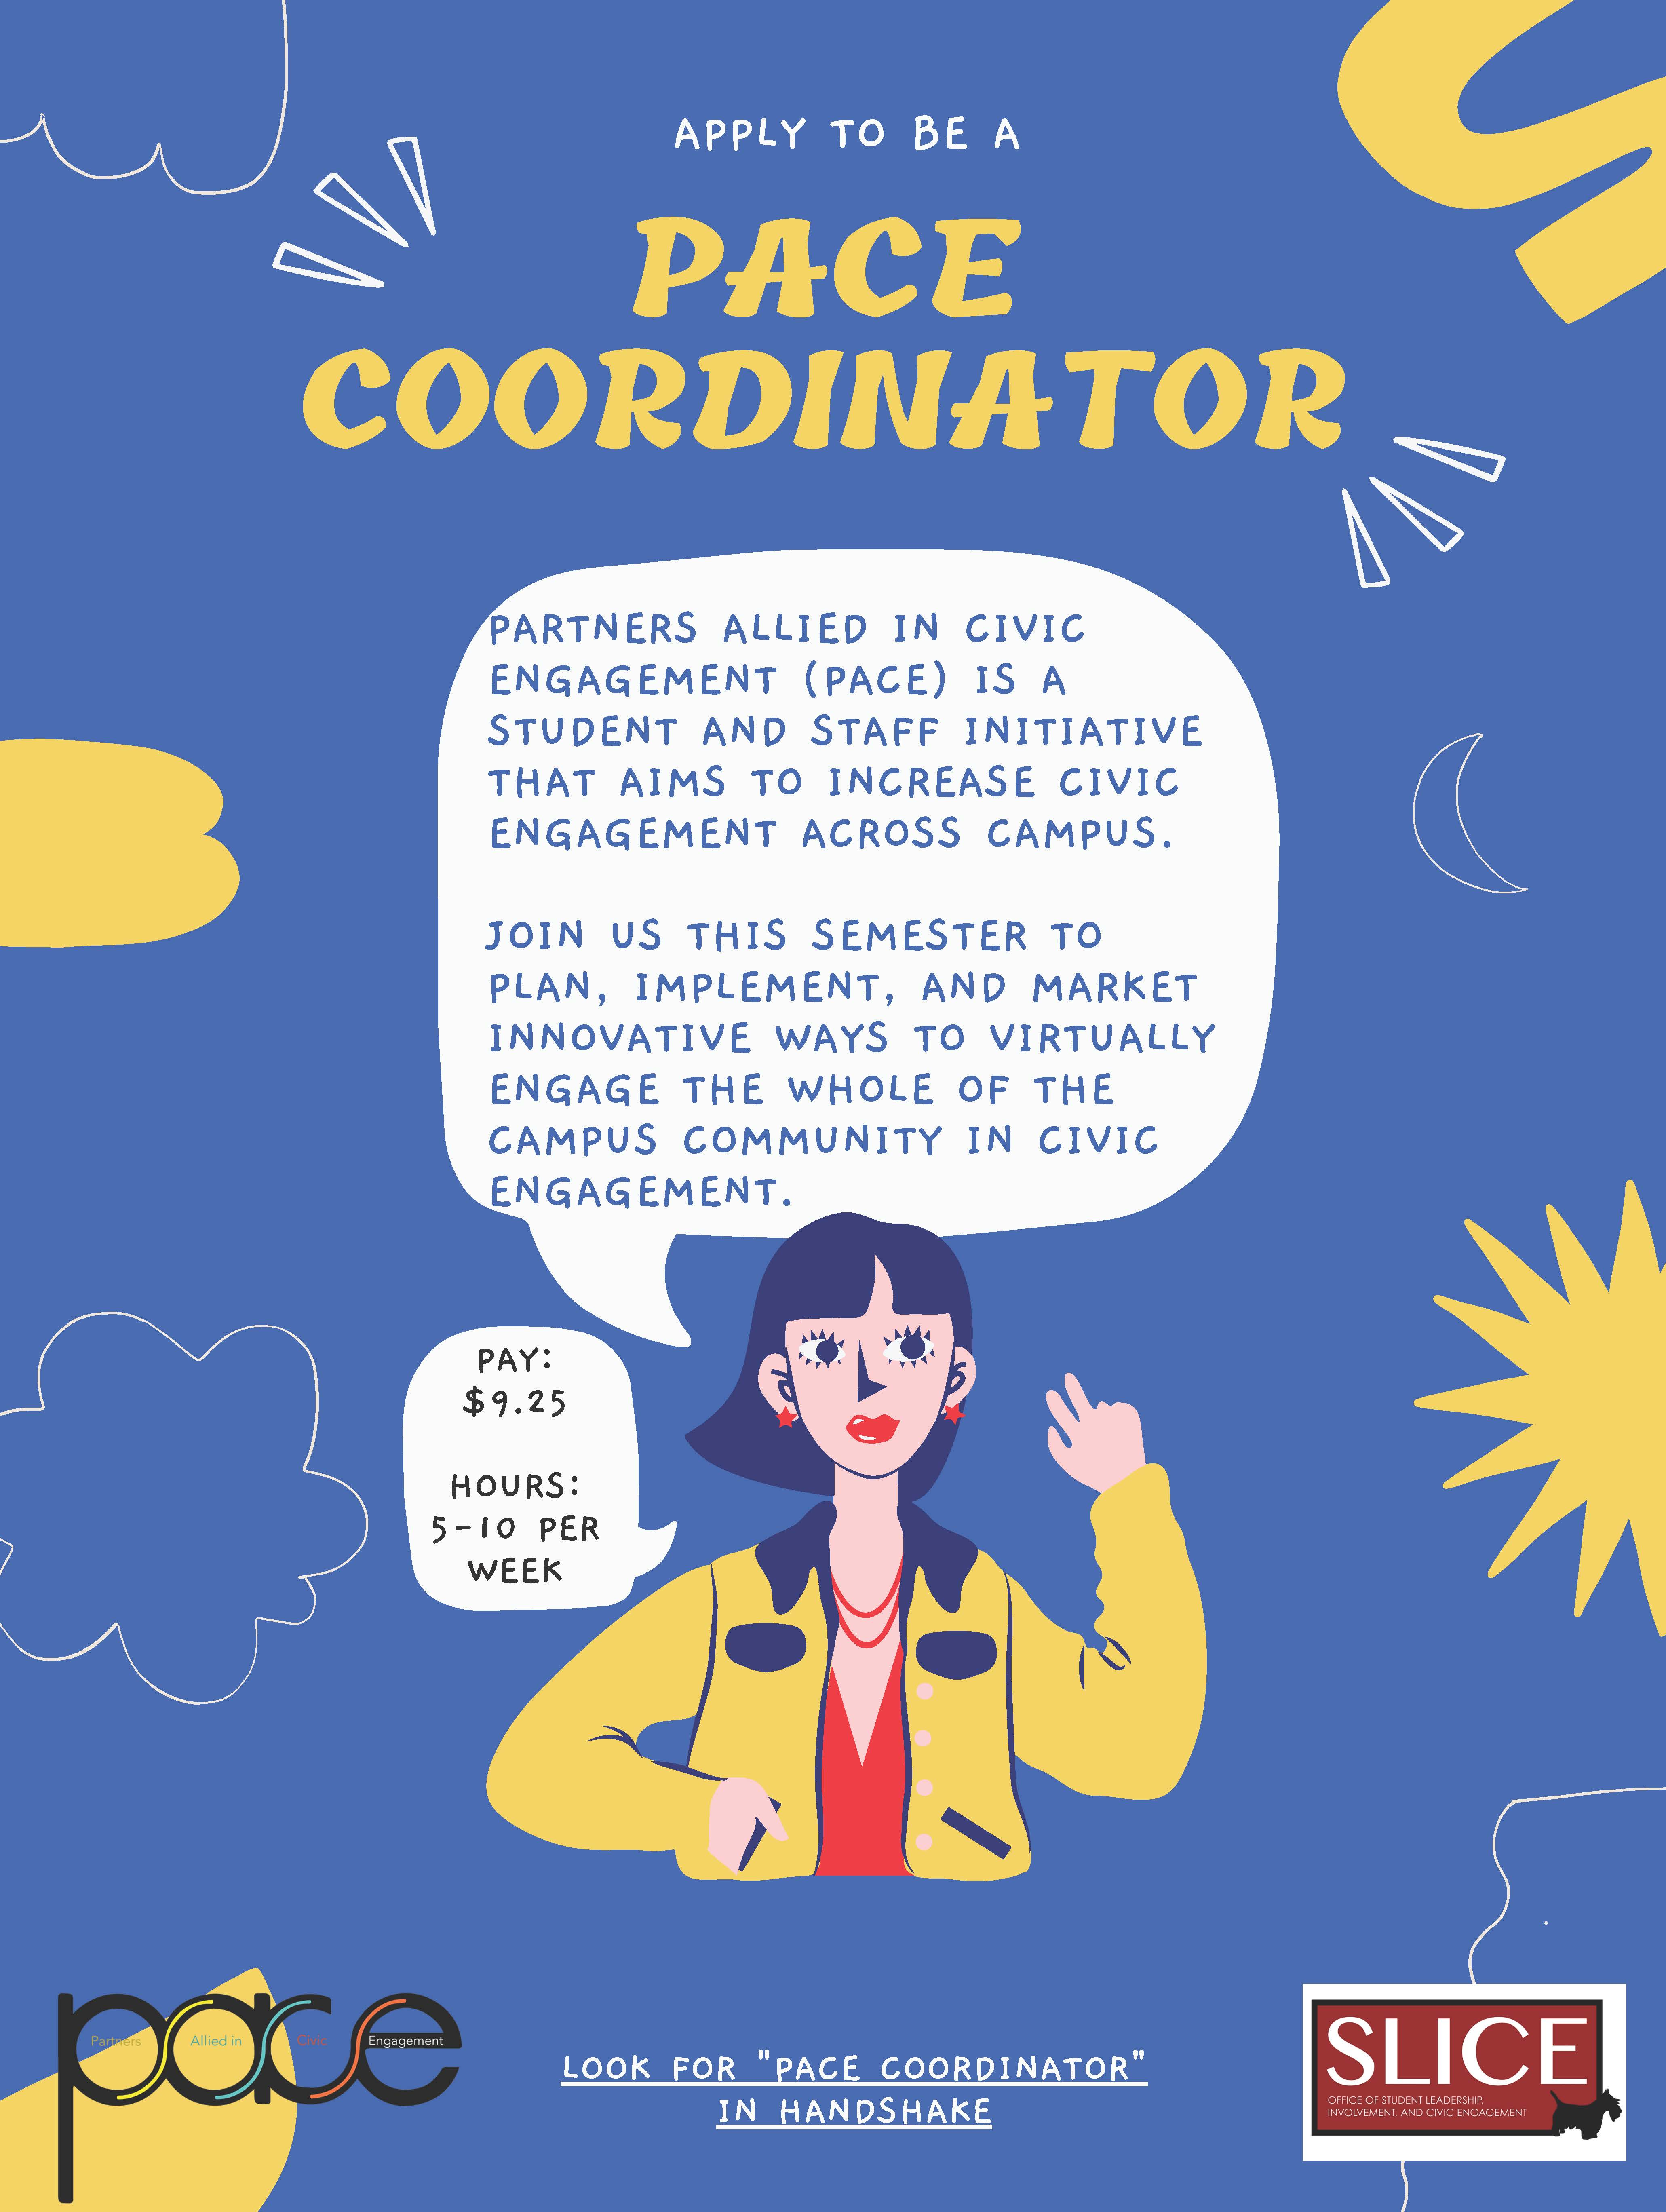 SLICE is looking for a PACE Coordinator